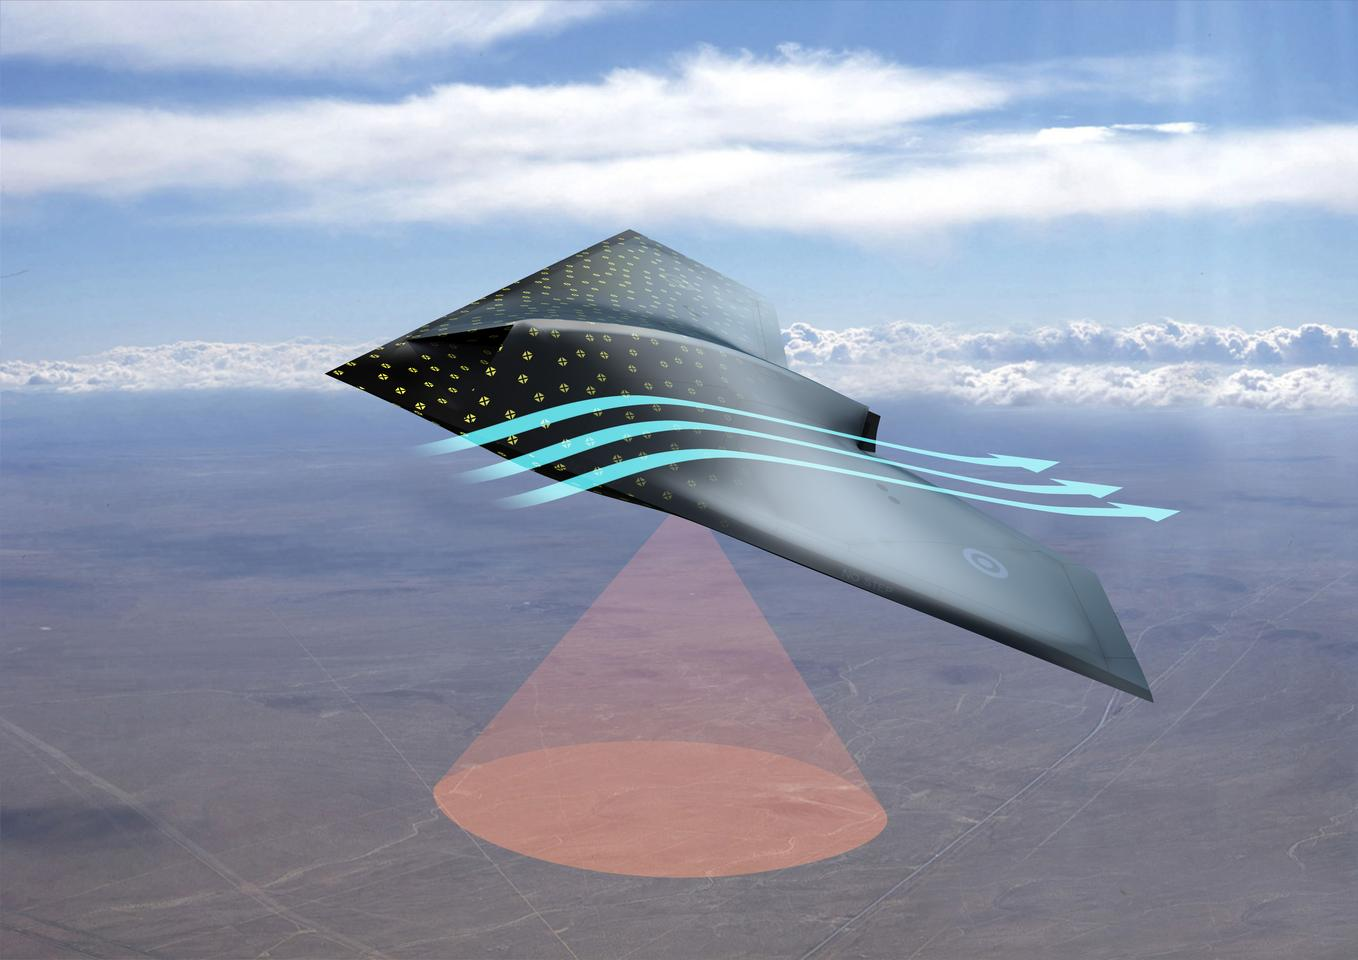 The BAE smart skin would turn the entire hull of an aircraft into a sensor array